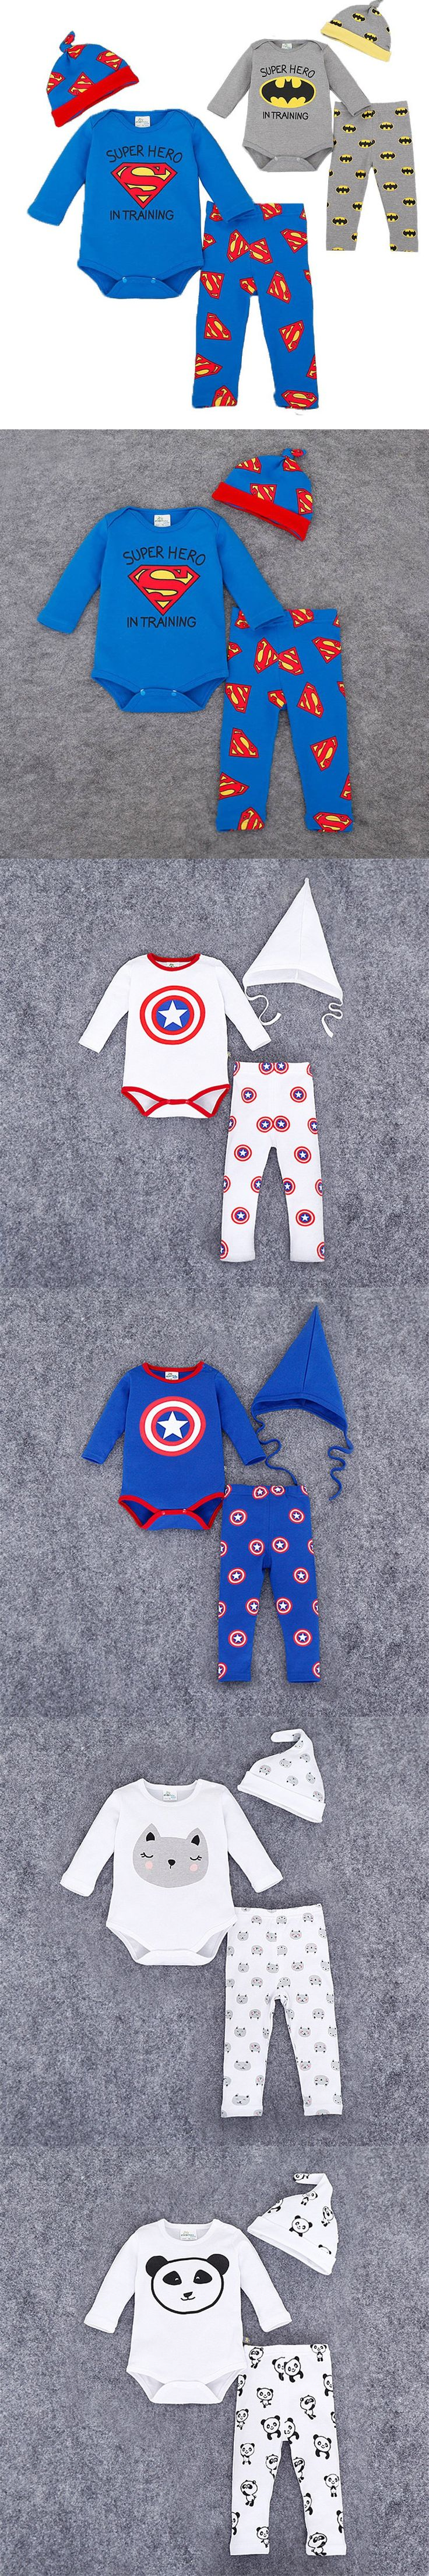 Brand Romper Set Fashion Cartoon Roupa De Bebe Bodysuit+Hat+Pant 3pcs Baby Boy Clothing Set Superman Batman Newborn Baby Clothes $17.63